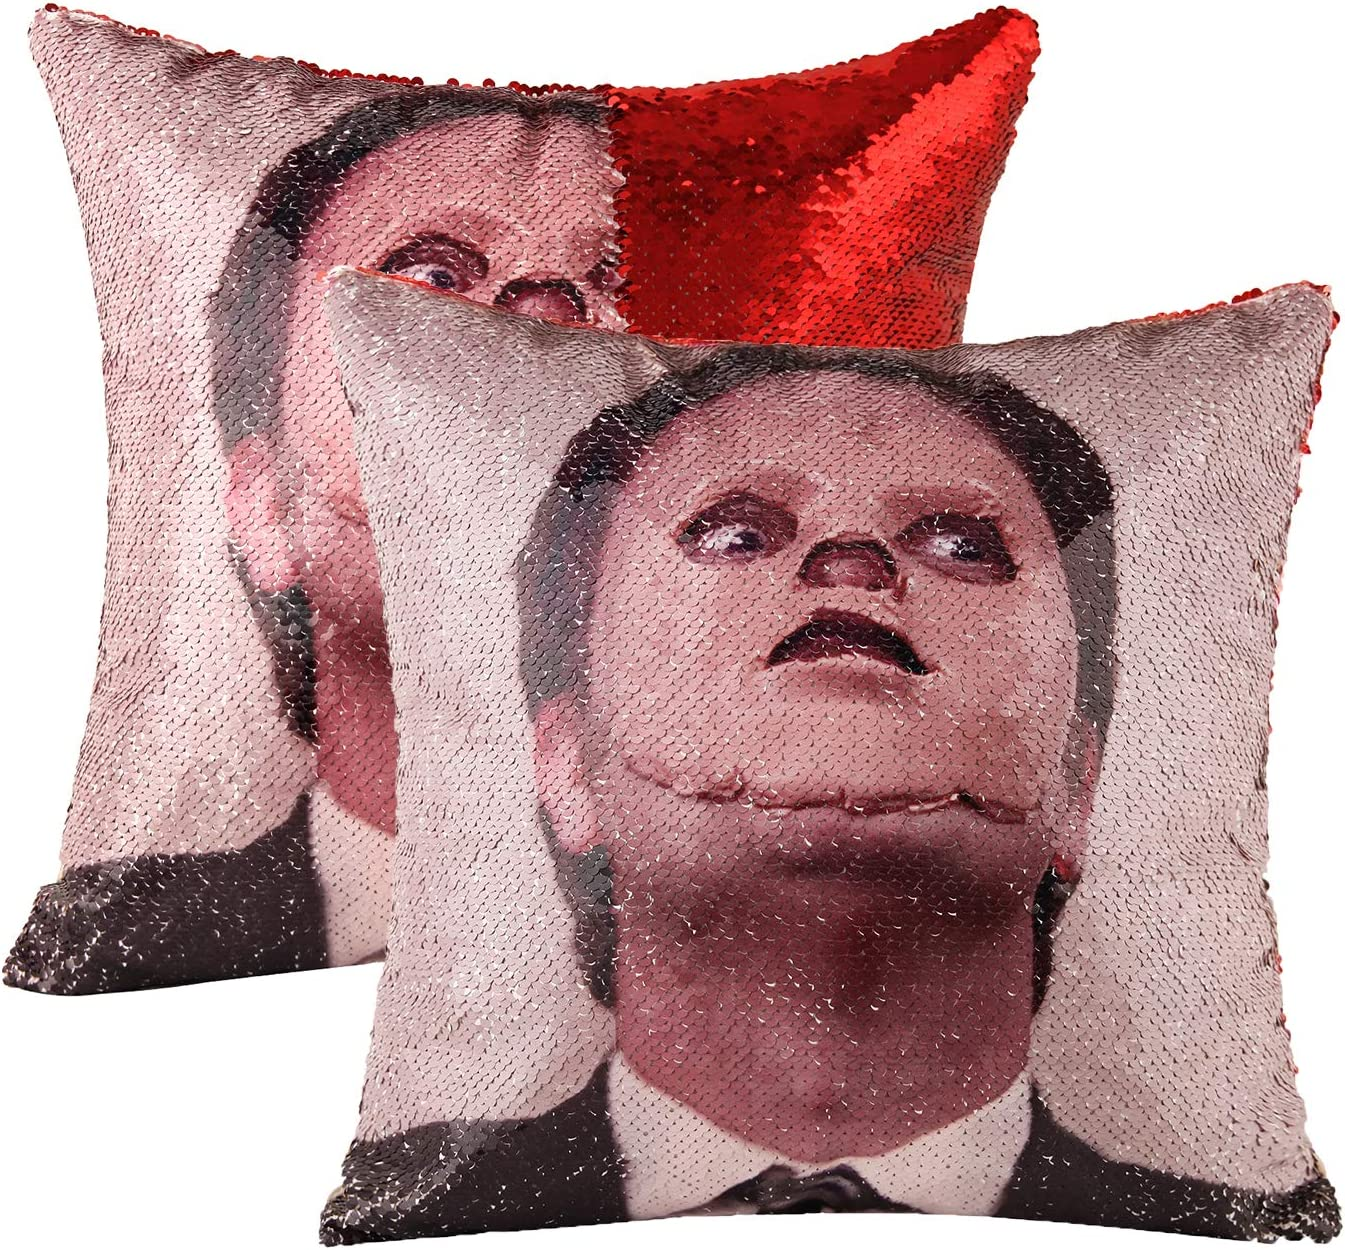 cygnus The Office Dwight Schrute Sequin Pillow Covers Mermaid Magic Reversible Decorative Change Color Pillow Covers 16x16 inch Funny Gag White Elephant Gifts,Red